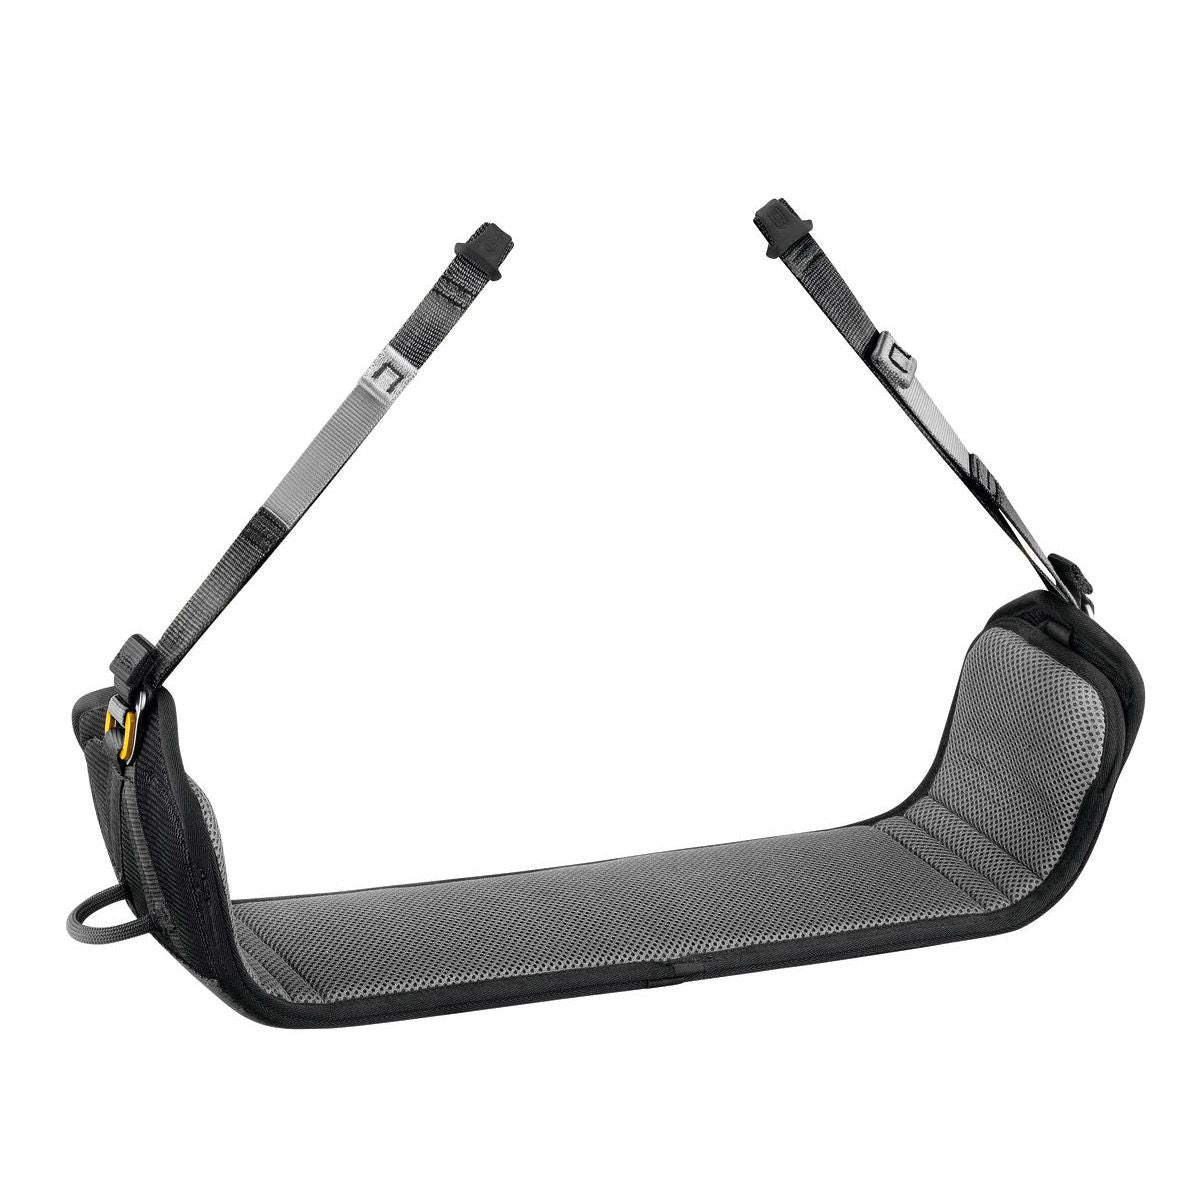 Petzl PODIUM Work Seat for Rope Access harness S071